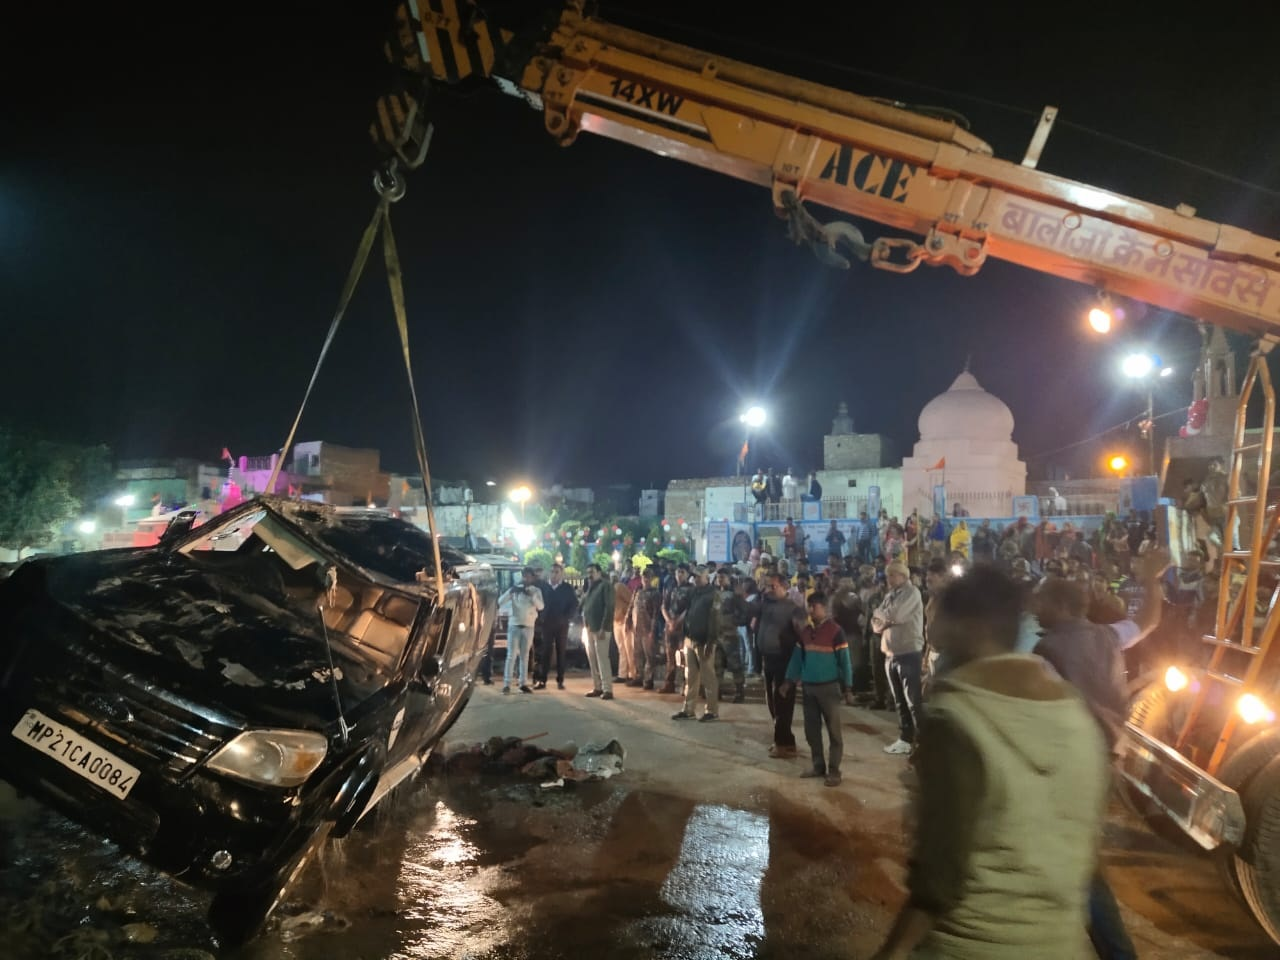 bhind, Car collapsed, Gauri Sarovar three Kanwaris died